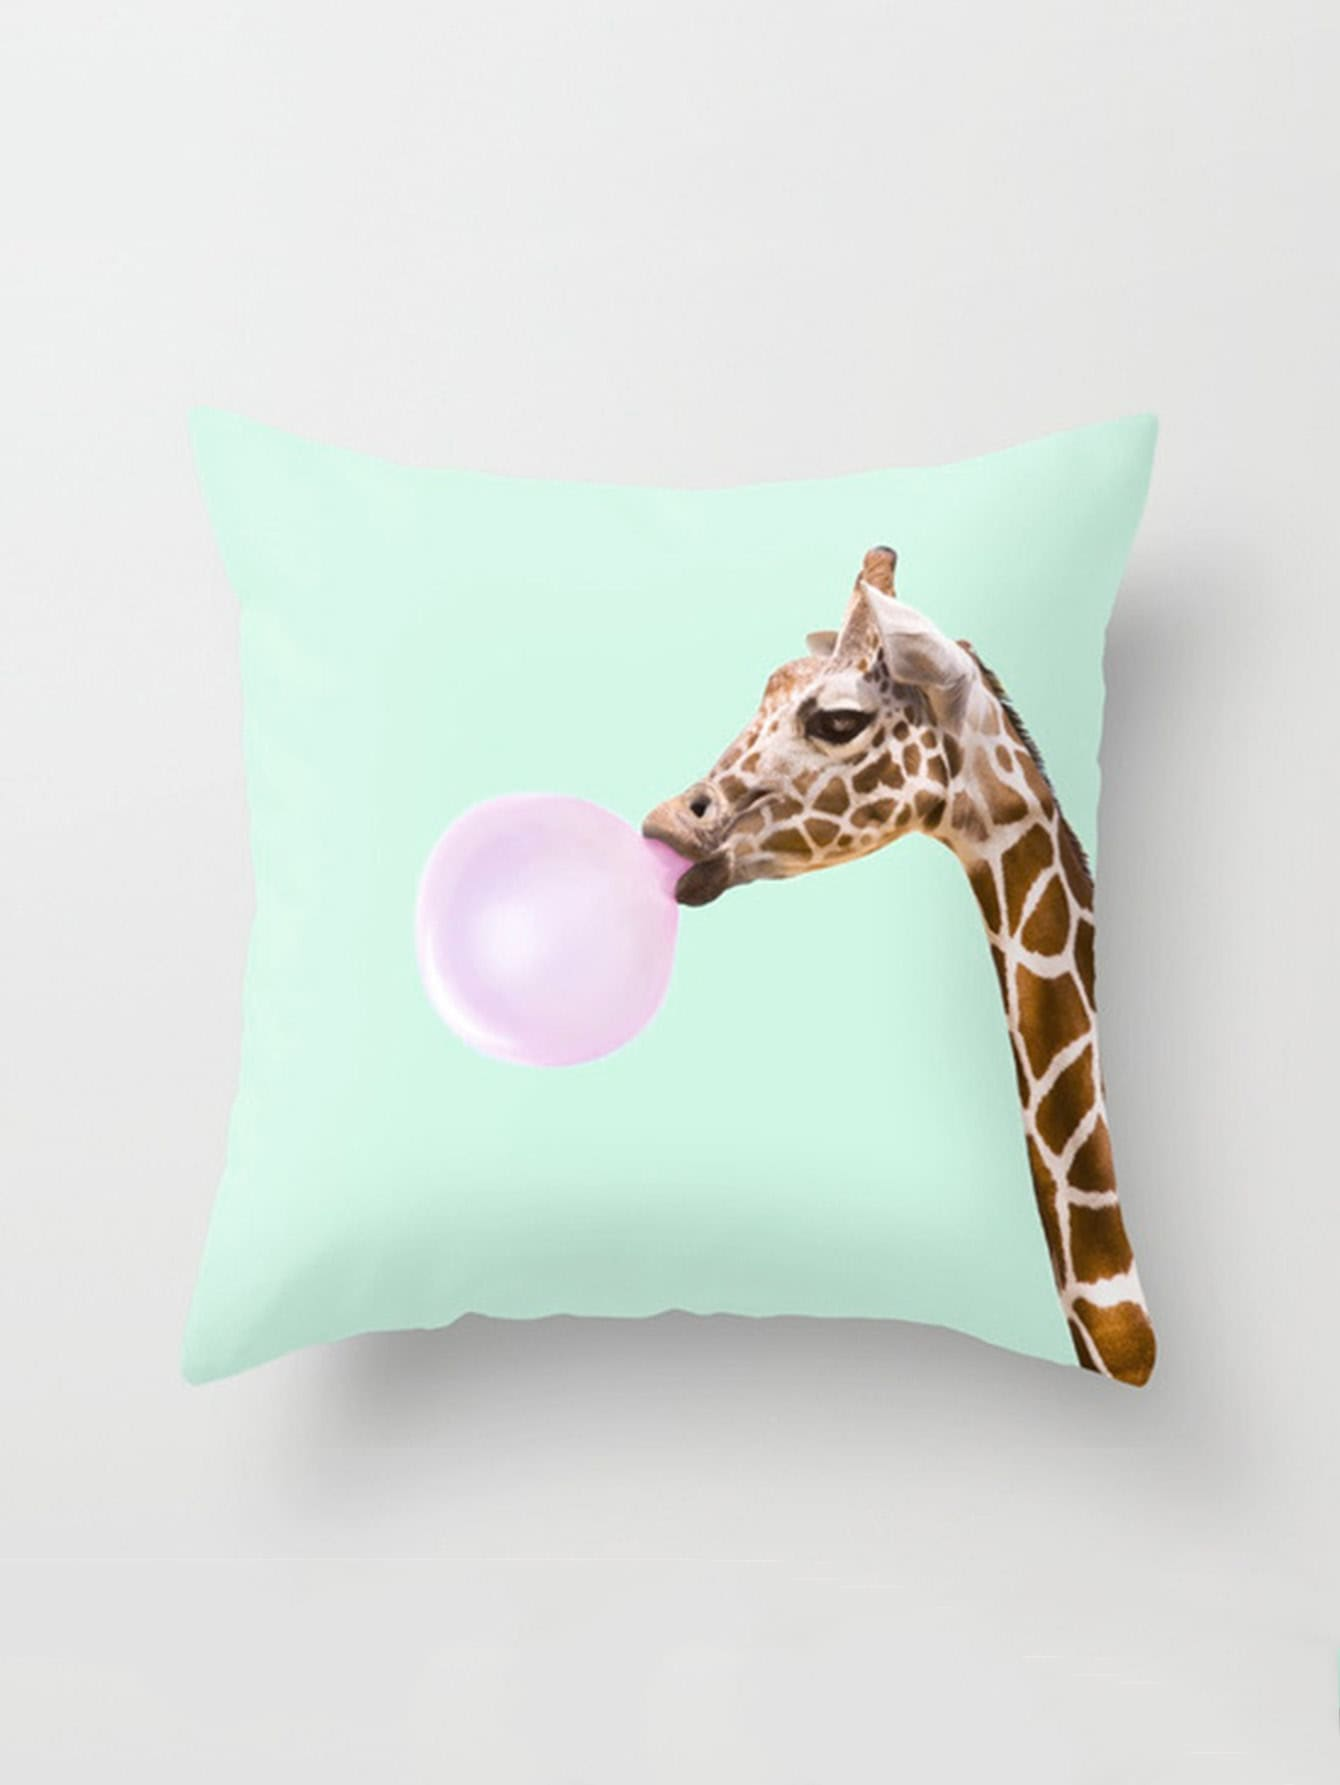 Giraffe Print Pillowcase Cover pug print pillowcase cover